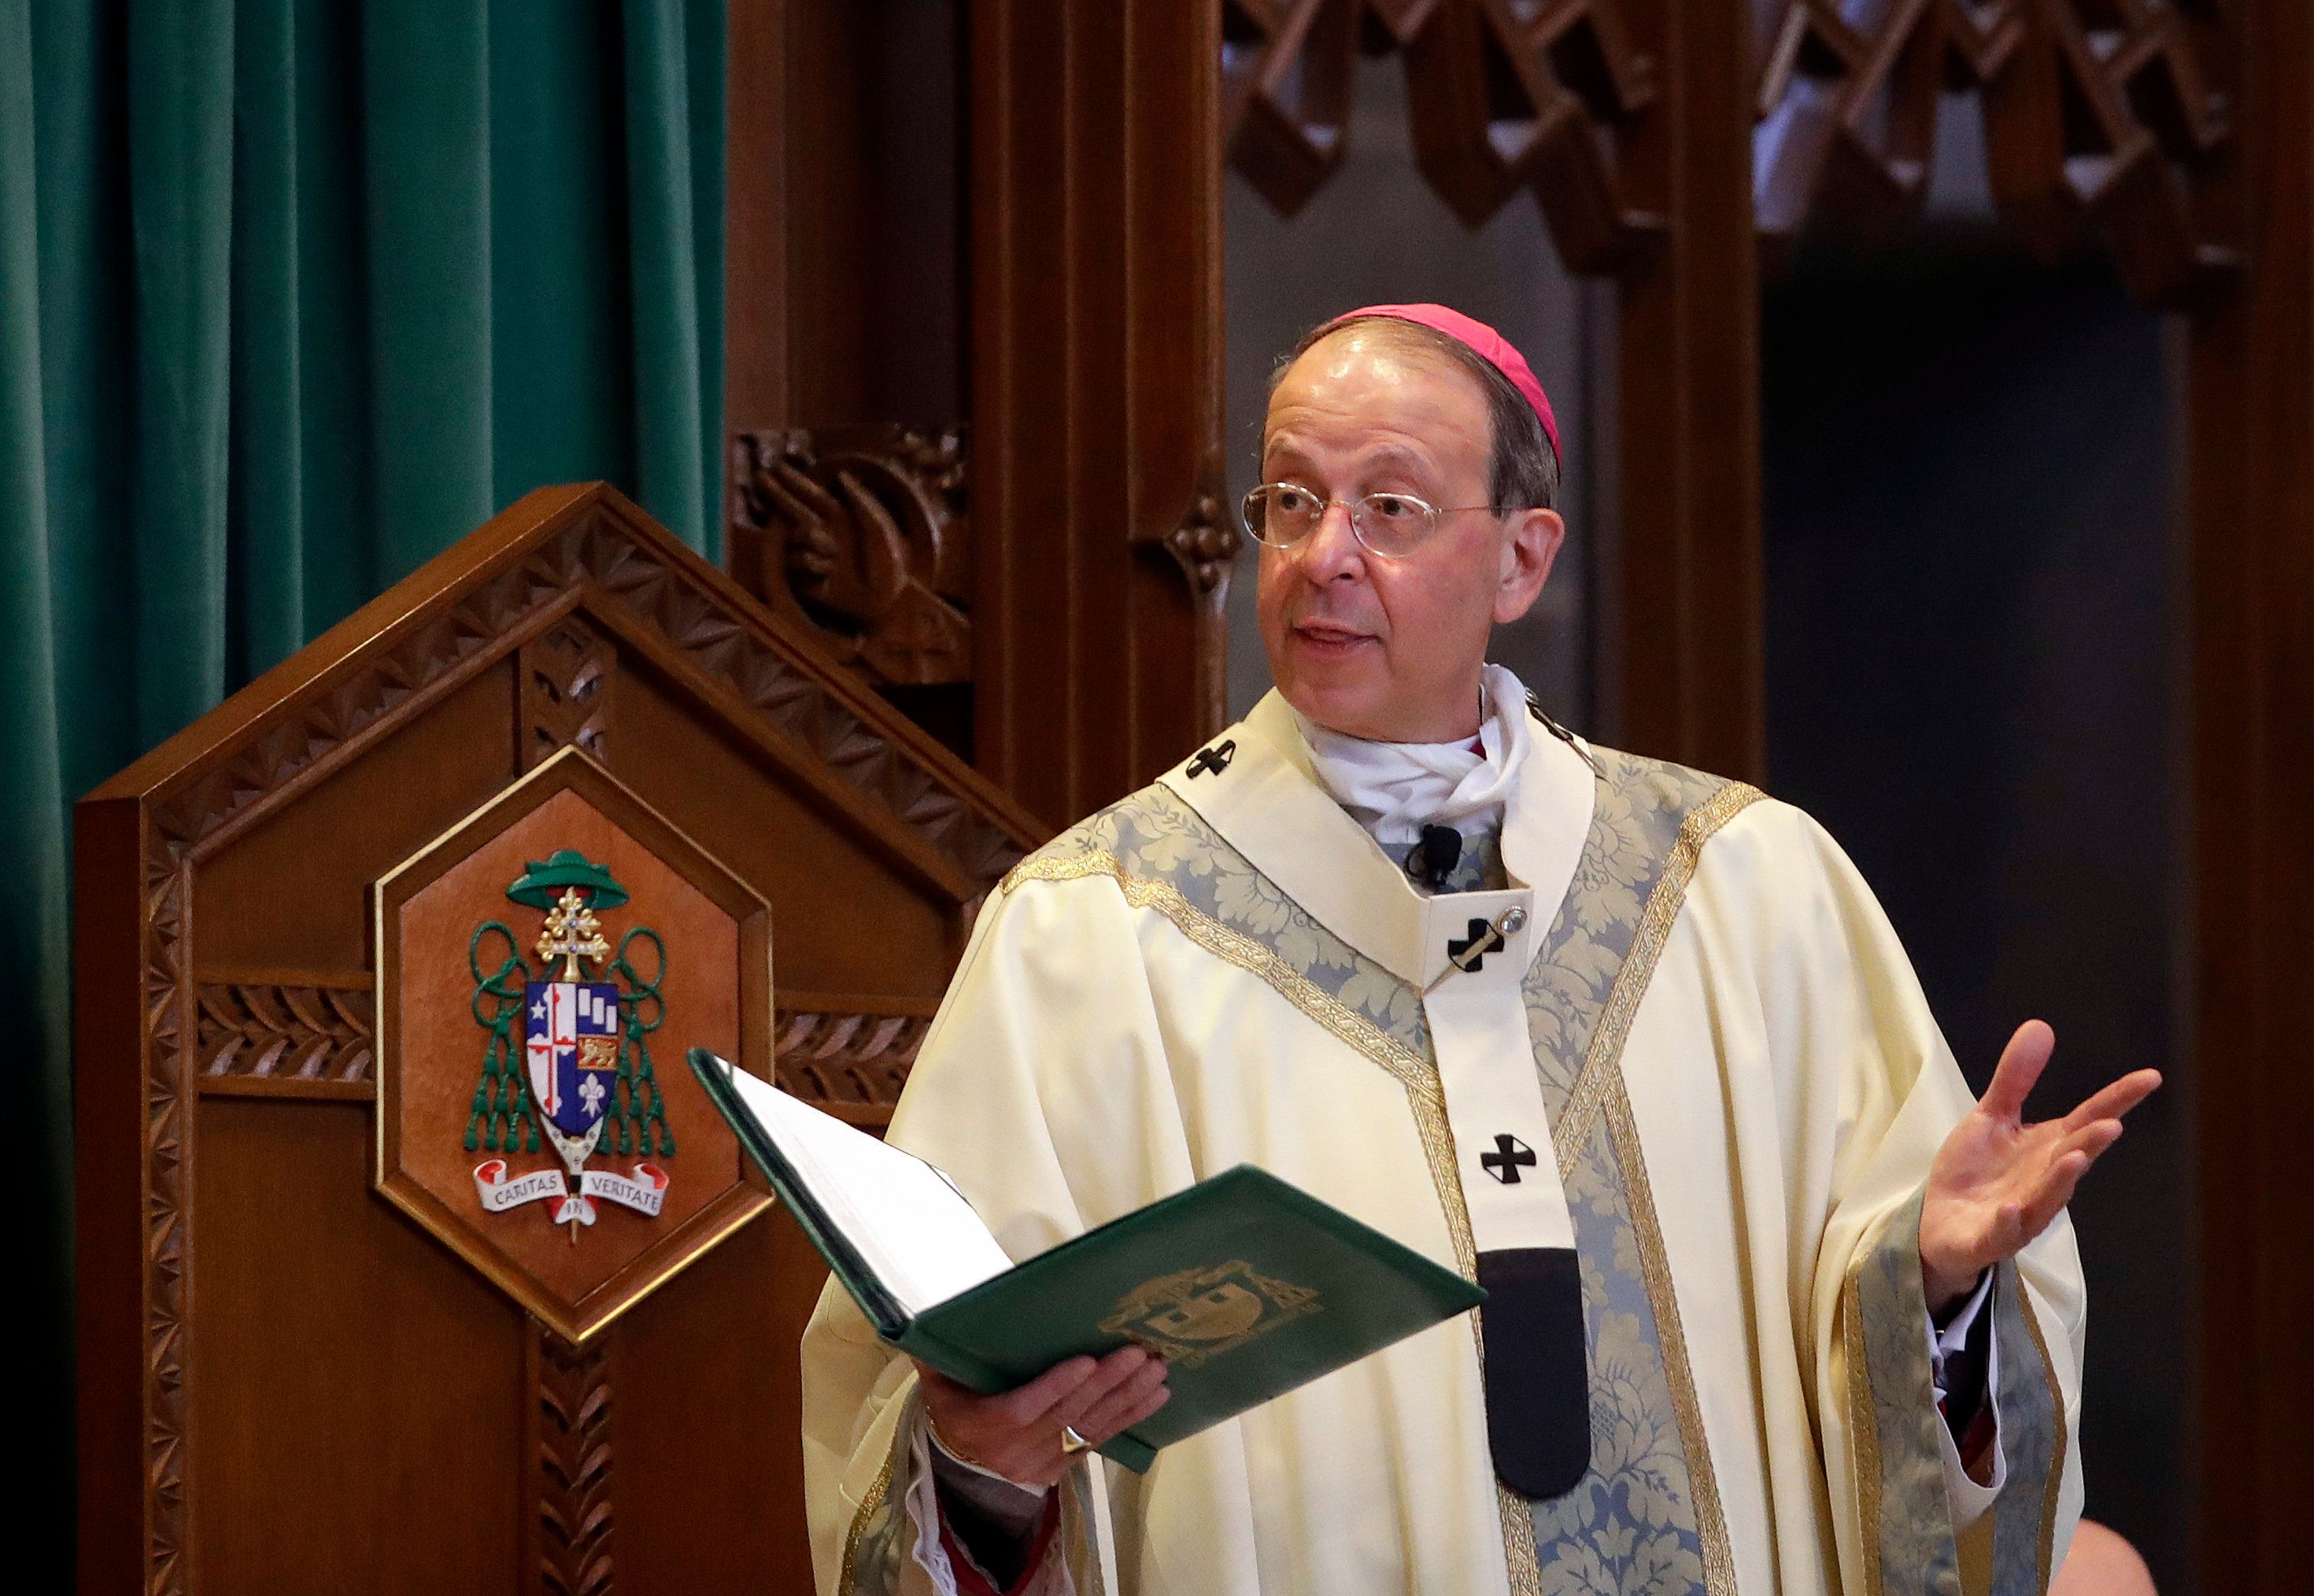 Baltimore Archbishop William Lori leads a funeral Mass for Cardinal William Keeler at the Cathedral of Mary Our Queen in Baltimore, Tuesday, March 28, 2017. (AP Photo/Patrick Semansky)